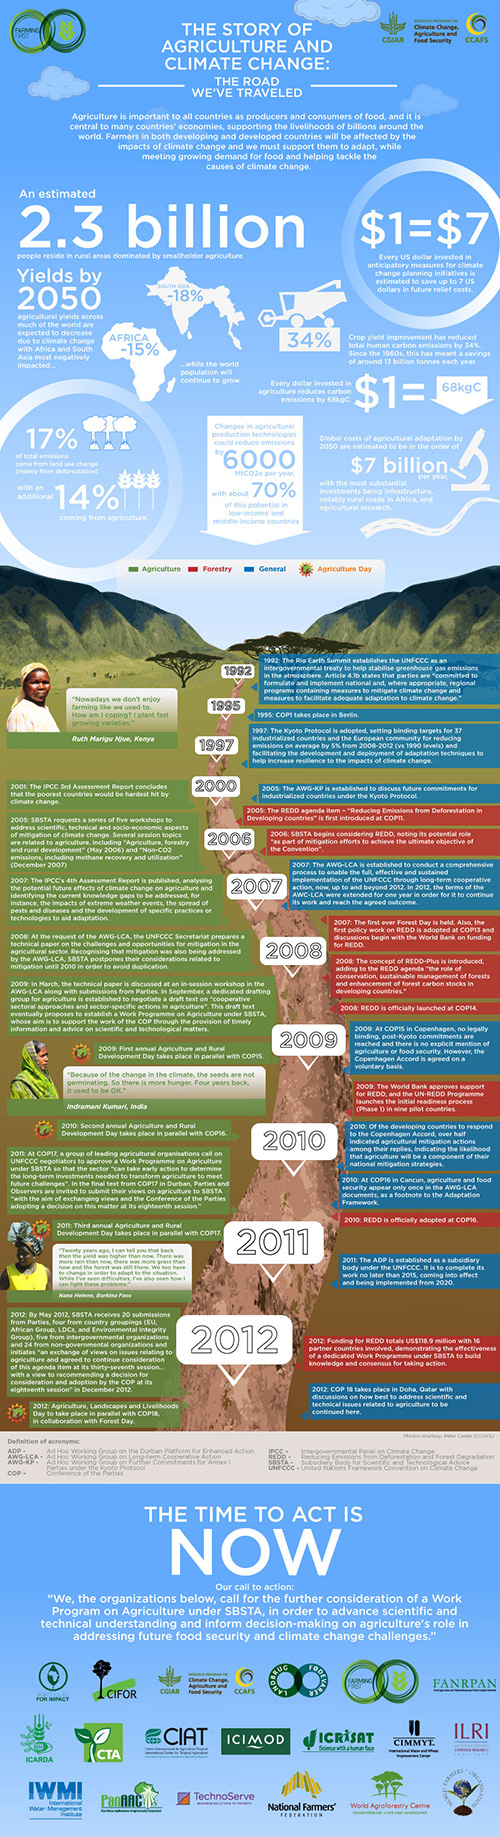 Agriculture and climate change infographic courtesy of Farming First, CCAFS, CIAT.